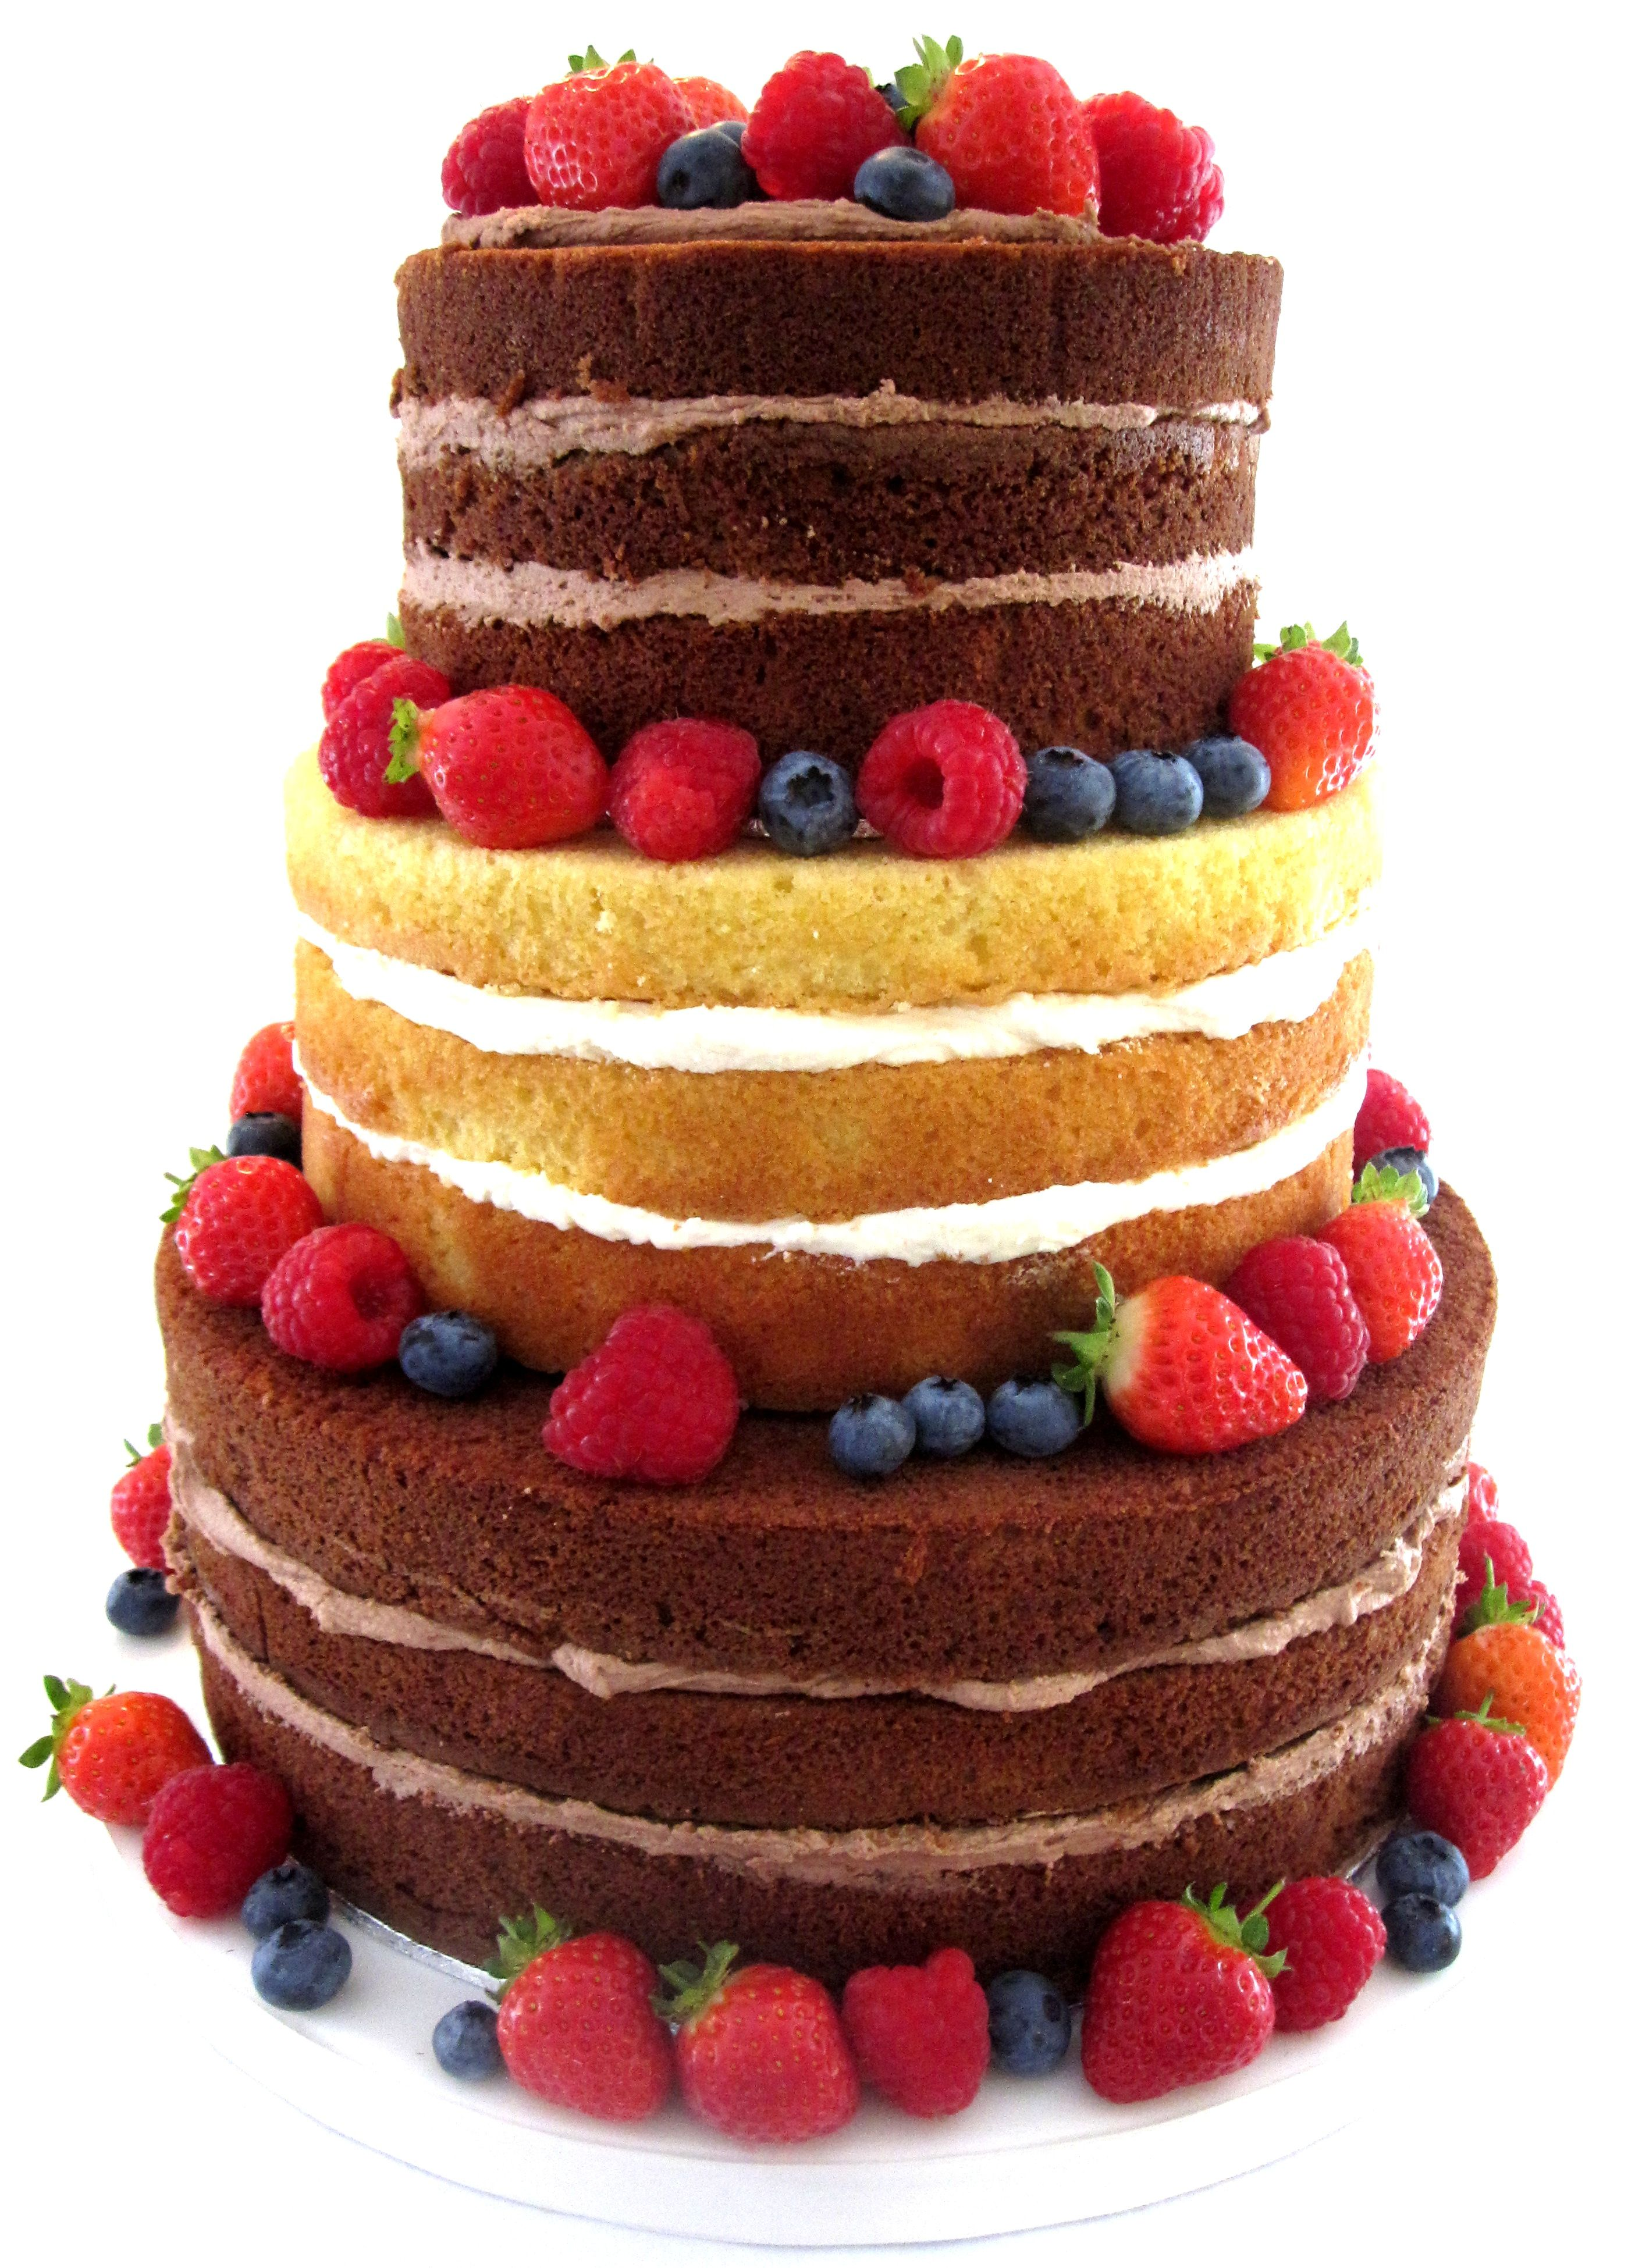 From Elegant Tiered Wedding Cakes To Rustic Buttercream Creations Green Kitchen Can Create Your Perfect Centrepiece